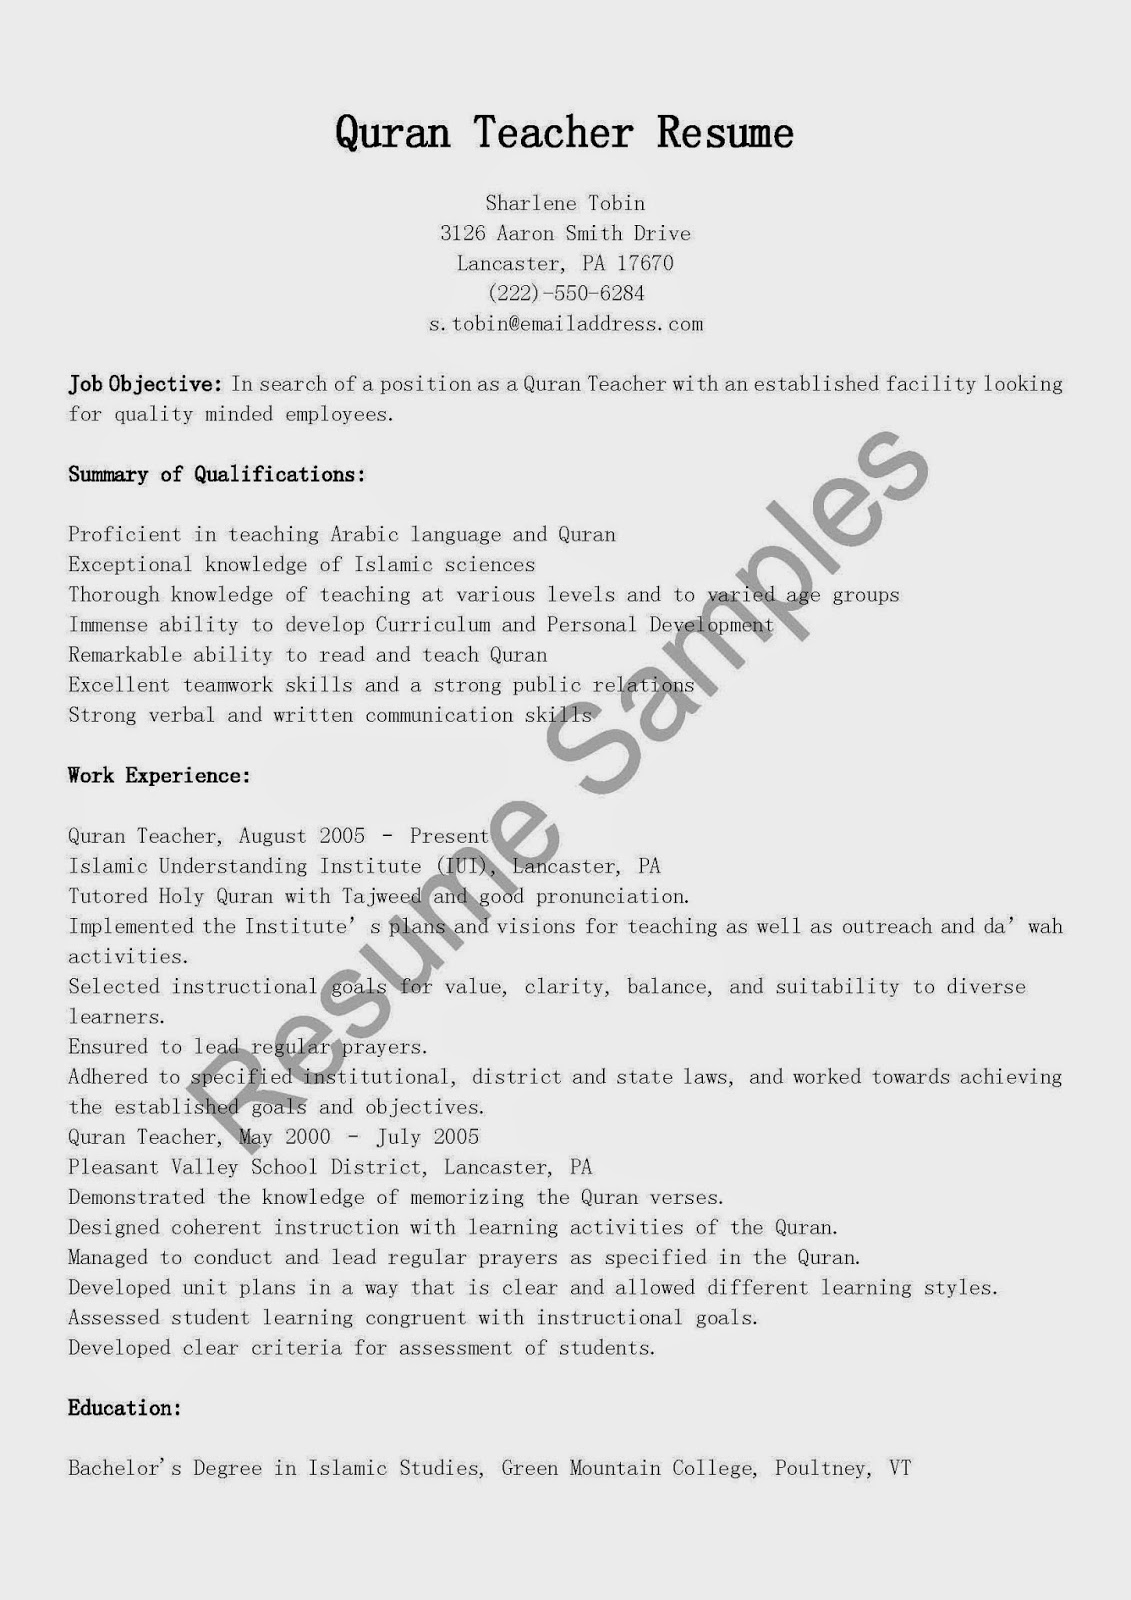 resume samples  quran teacher resume sample